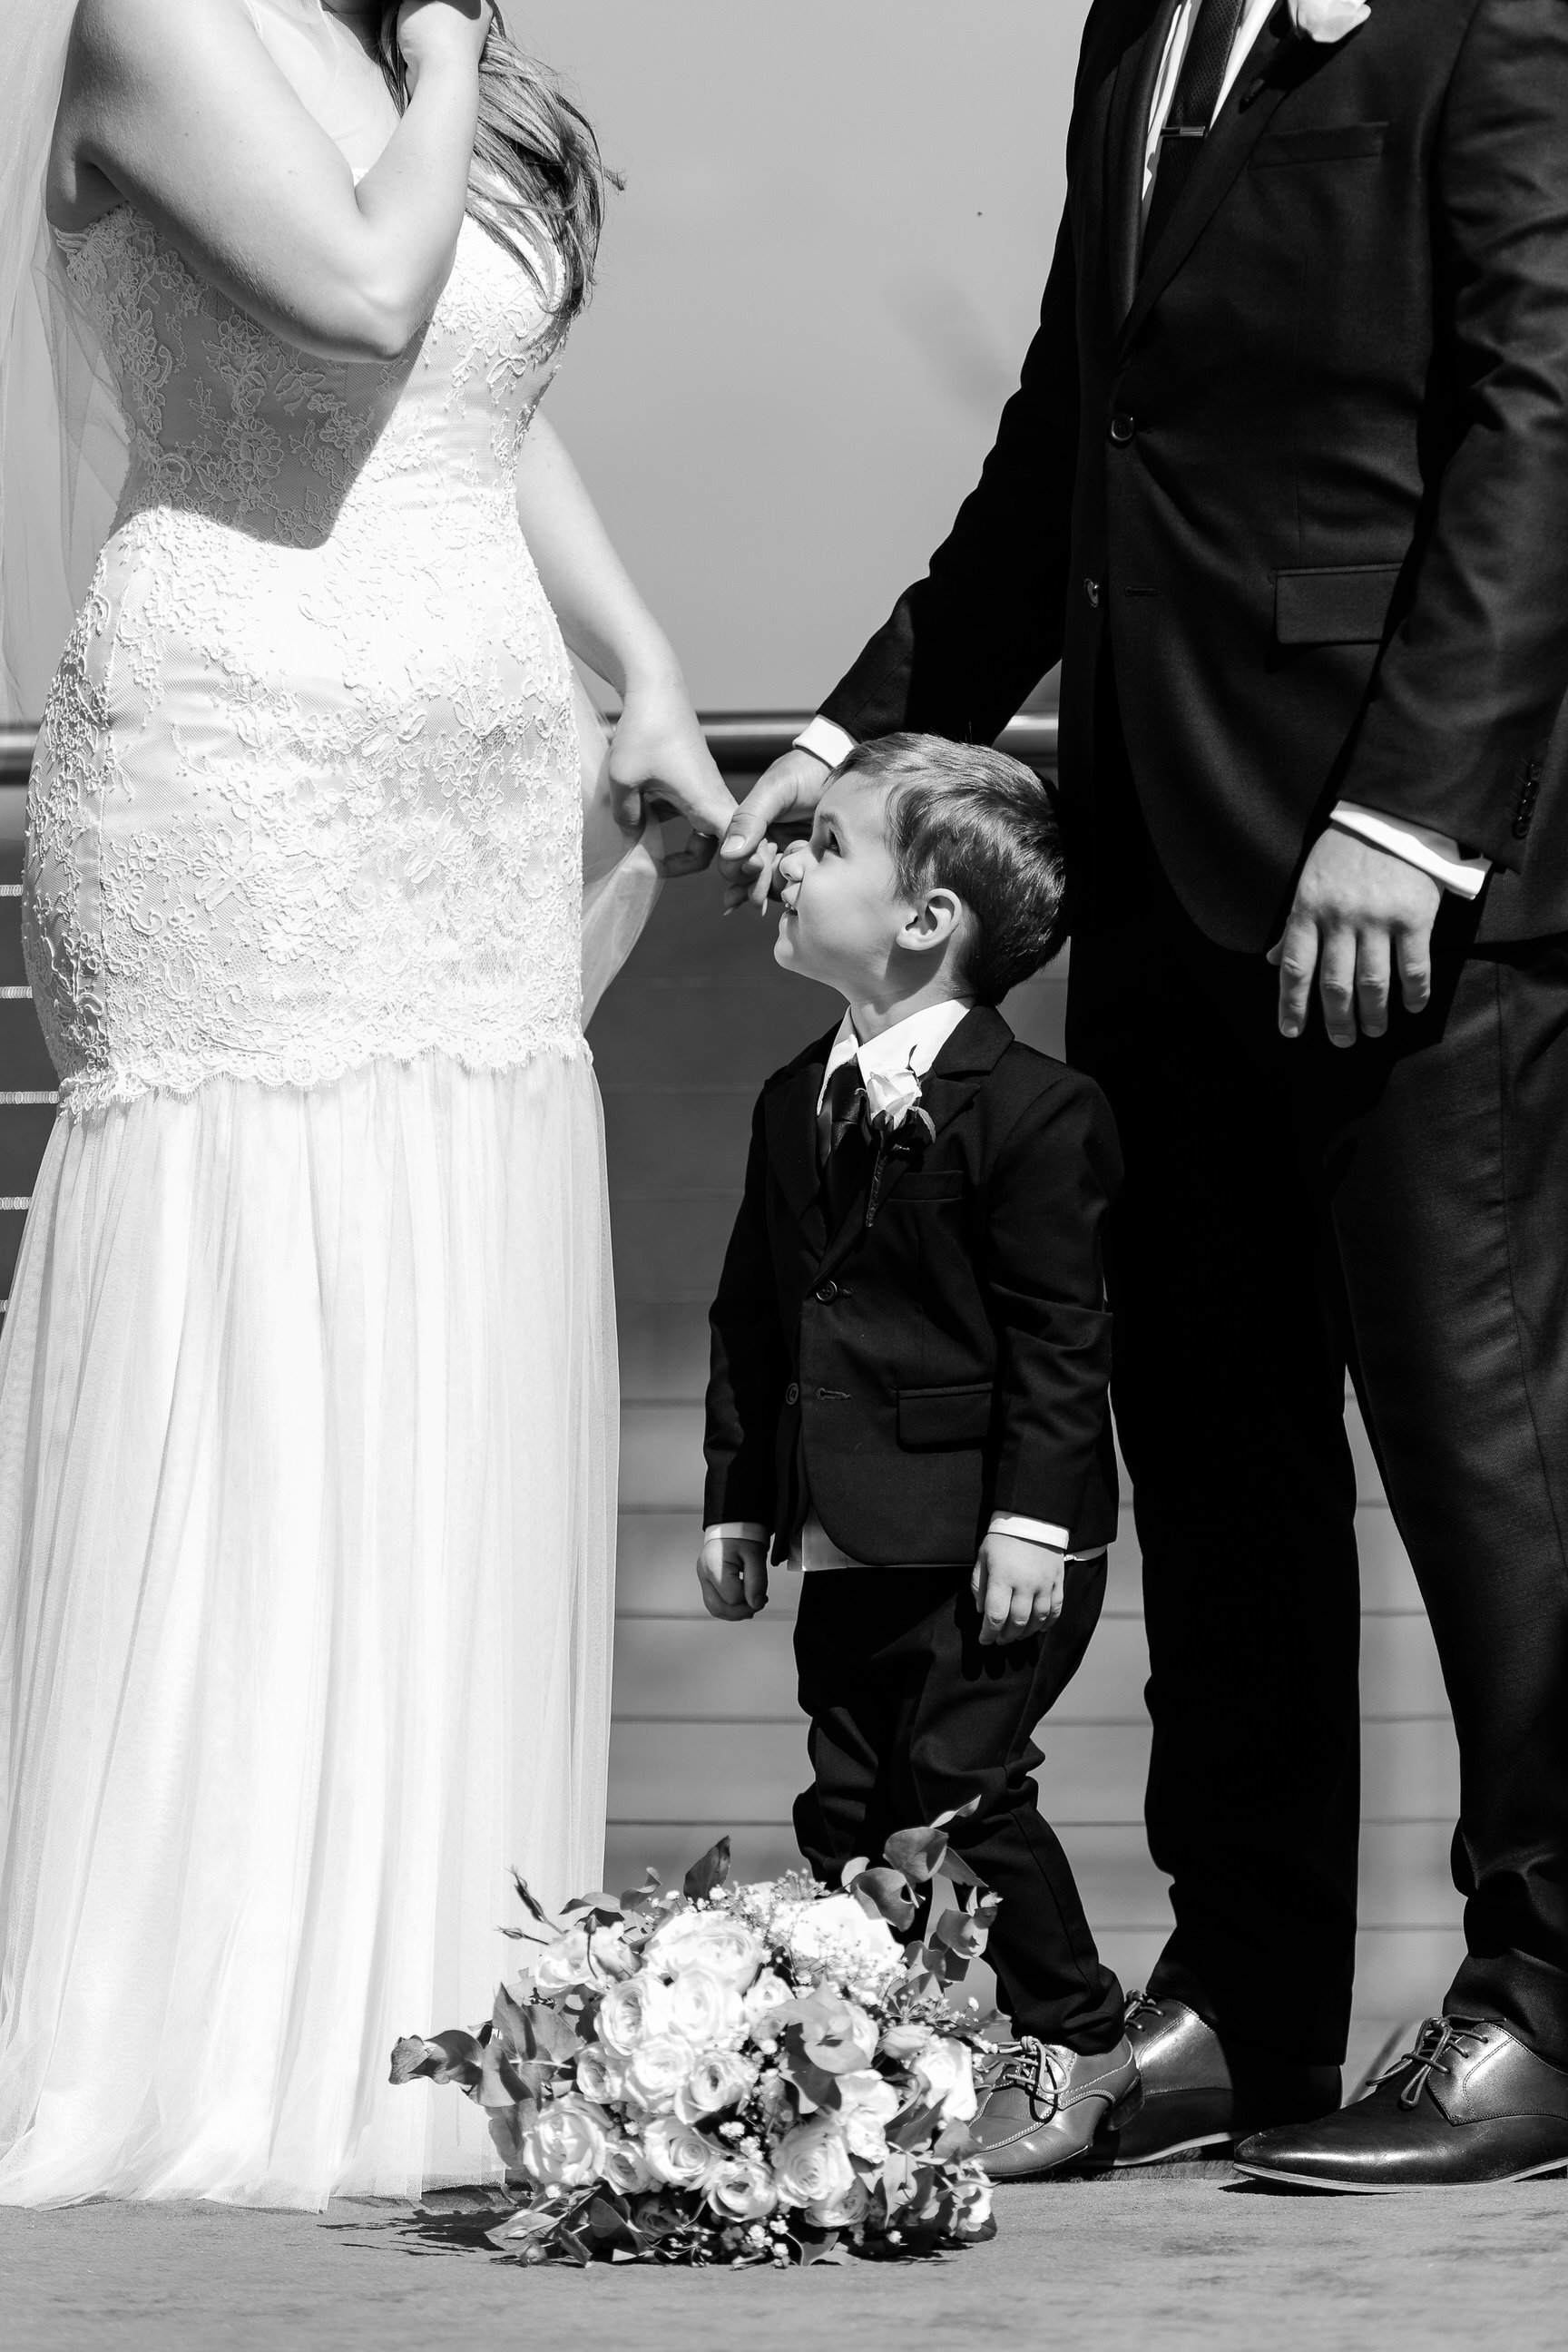 Justin_And_Jim_Photography_Balgownie_Winery_Wedding26.JPG